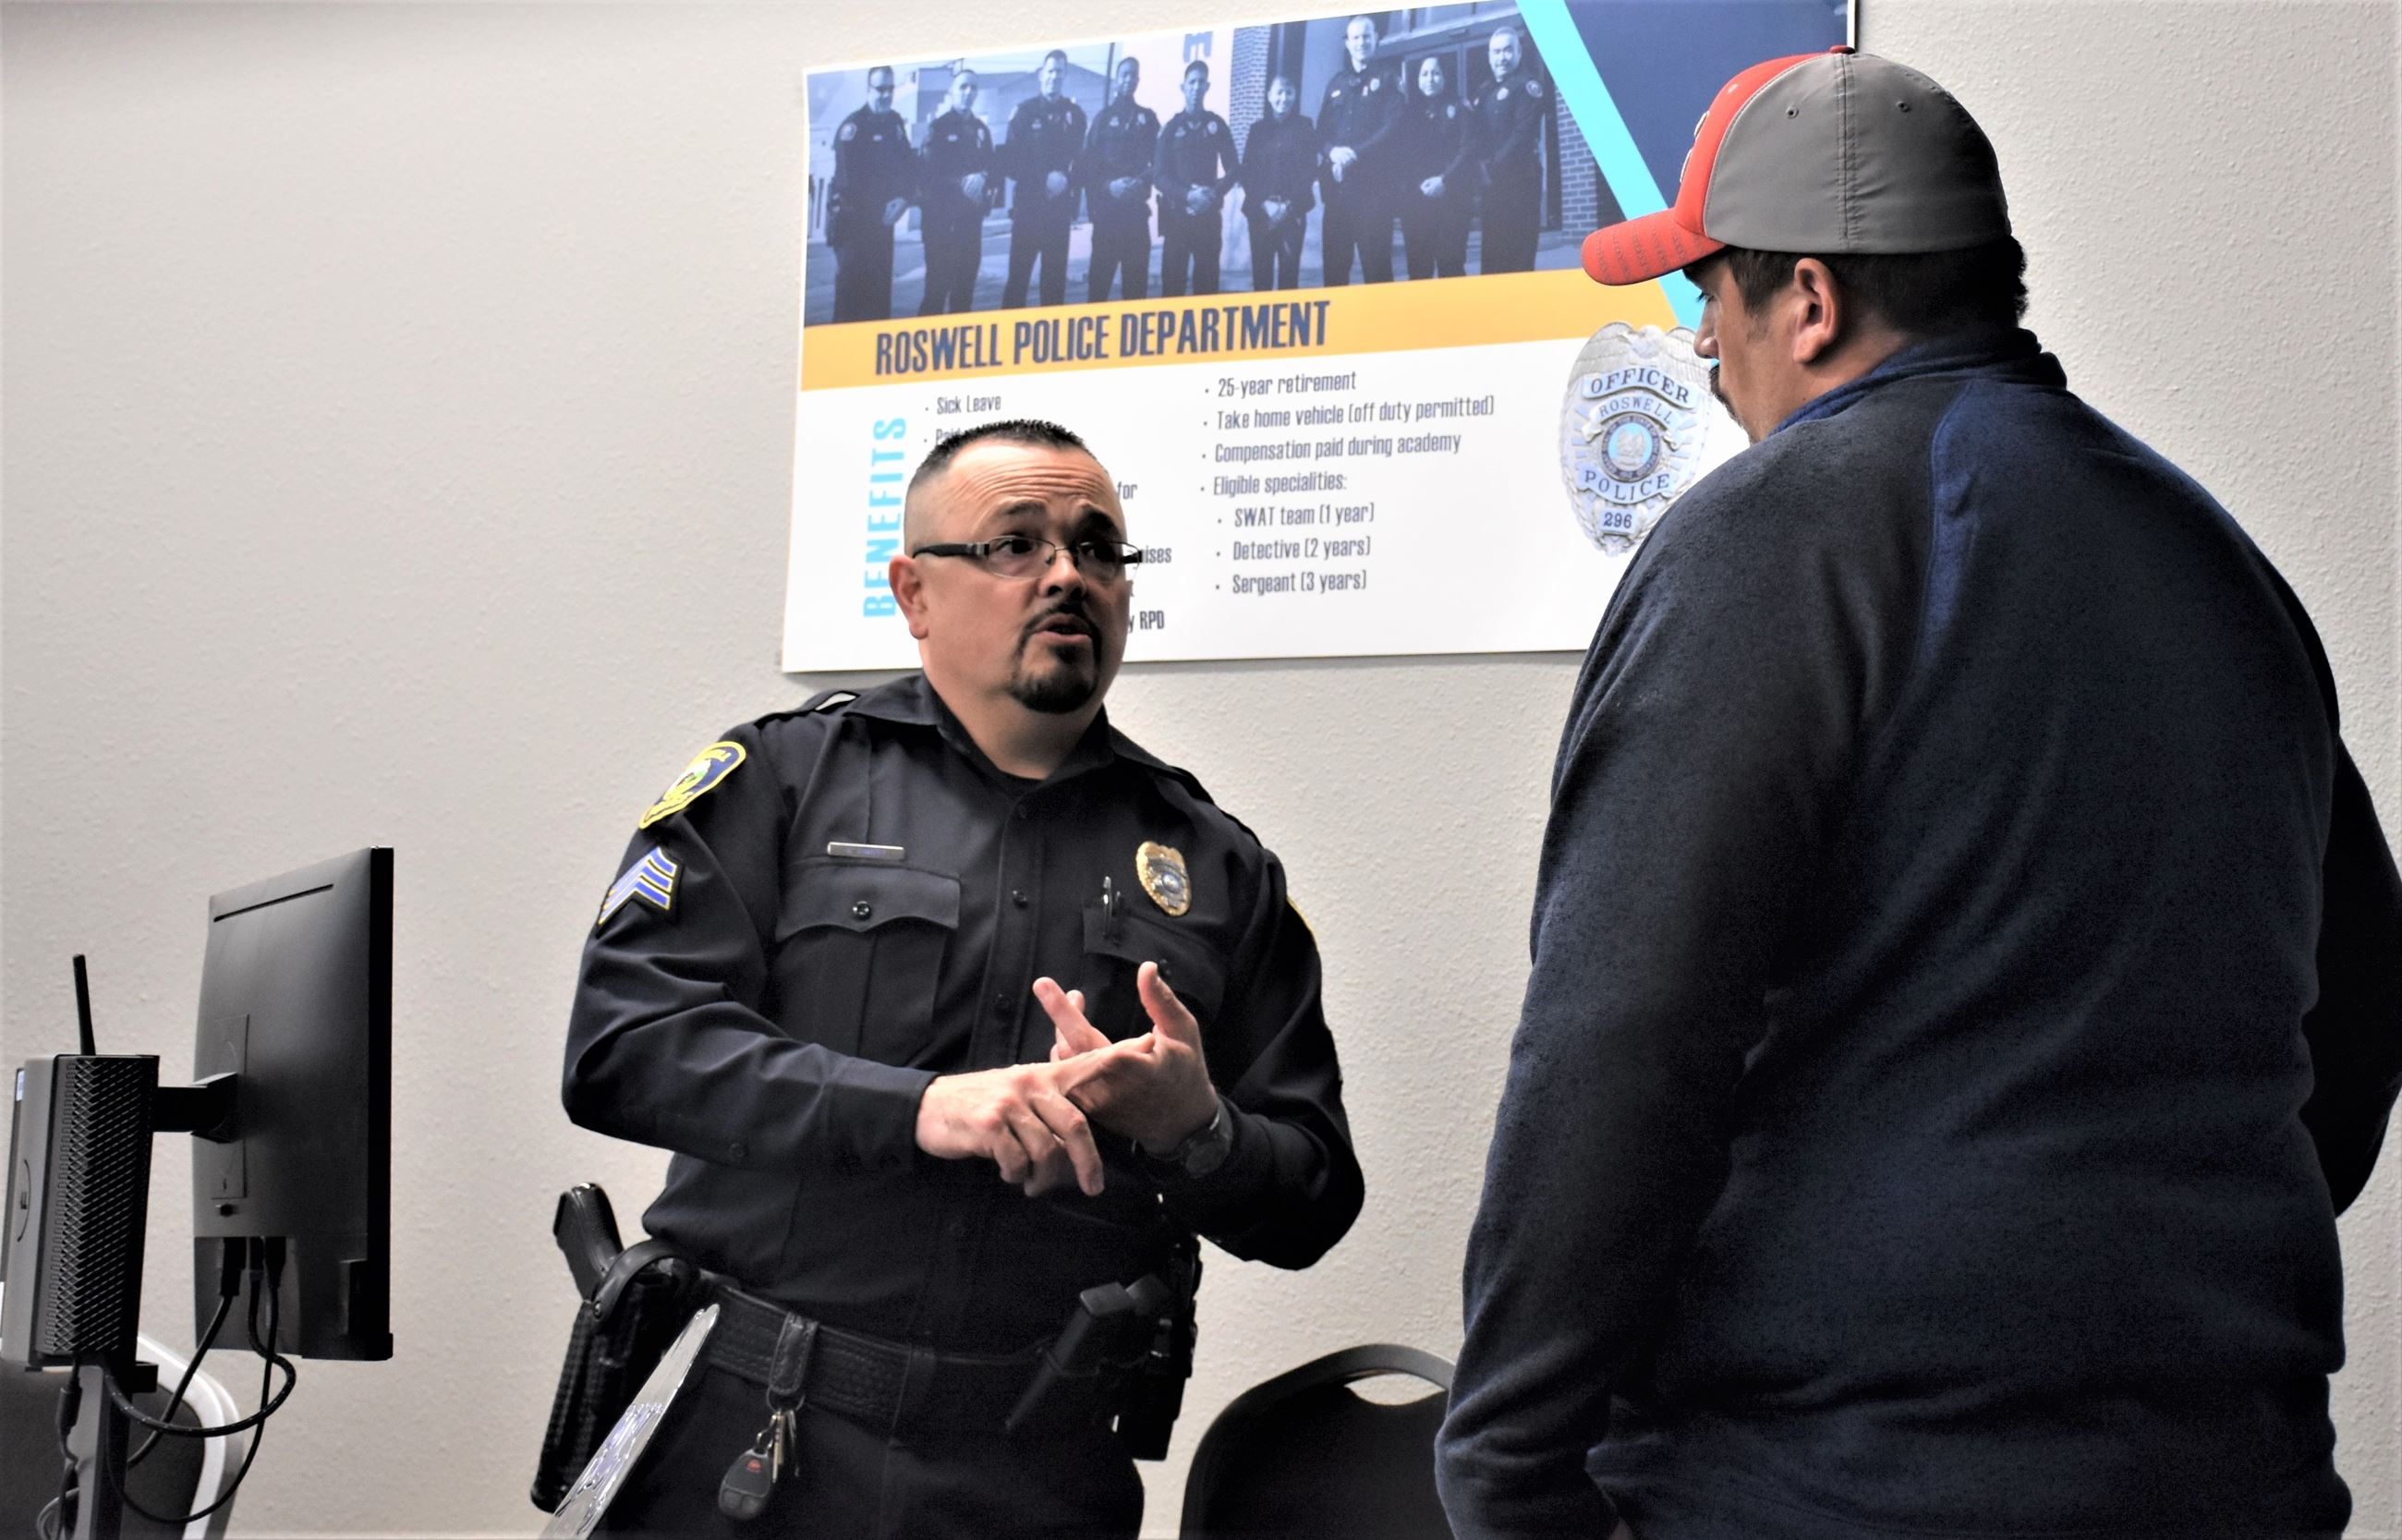 Sgt. Richard Romero at RPD Hiring Event (Jan 2020)